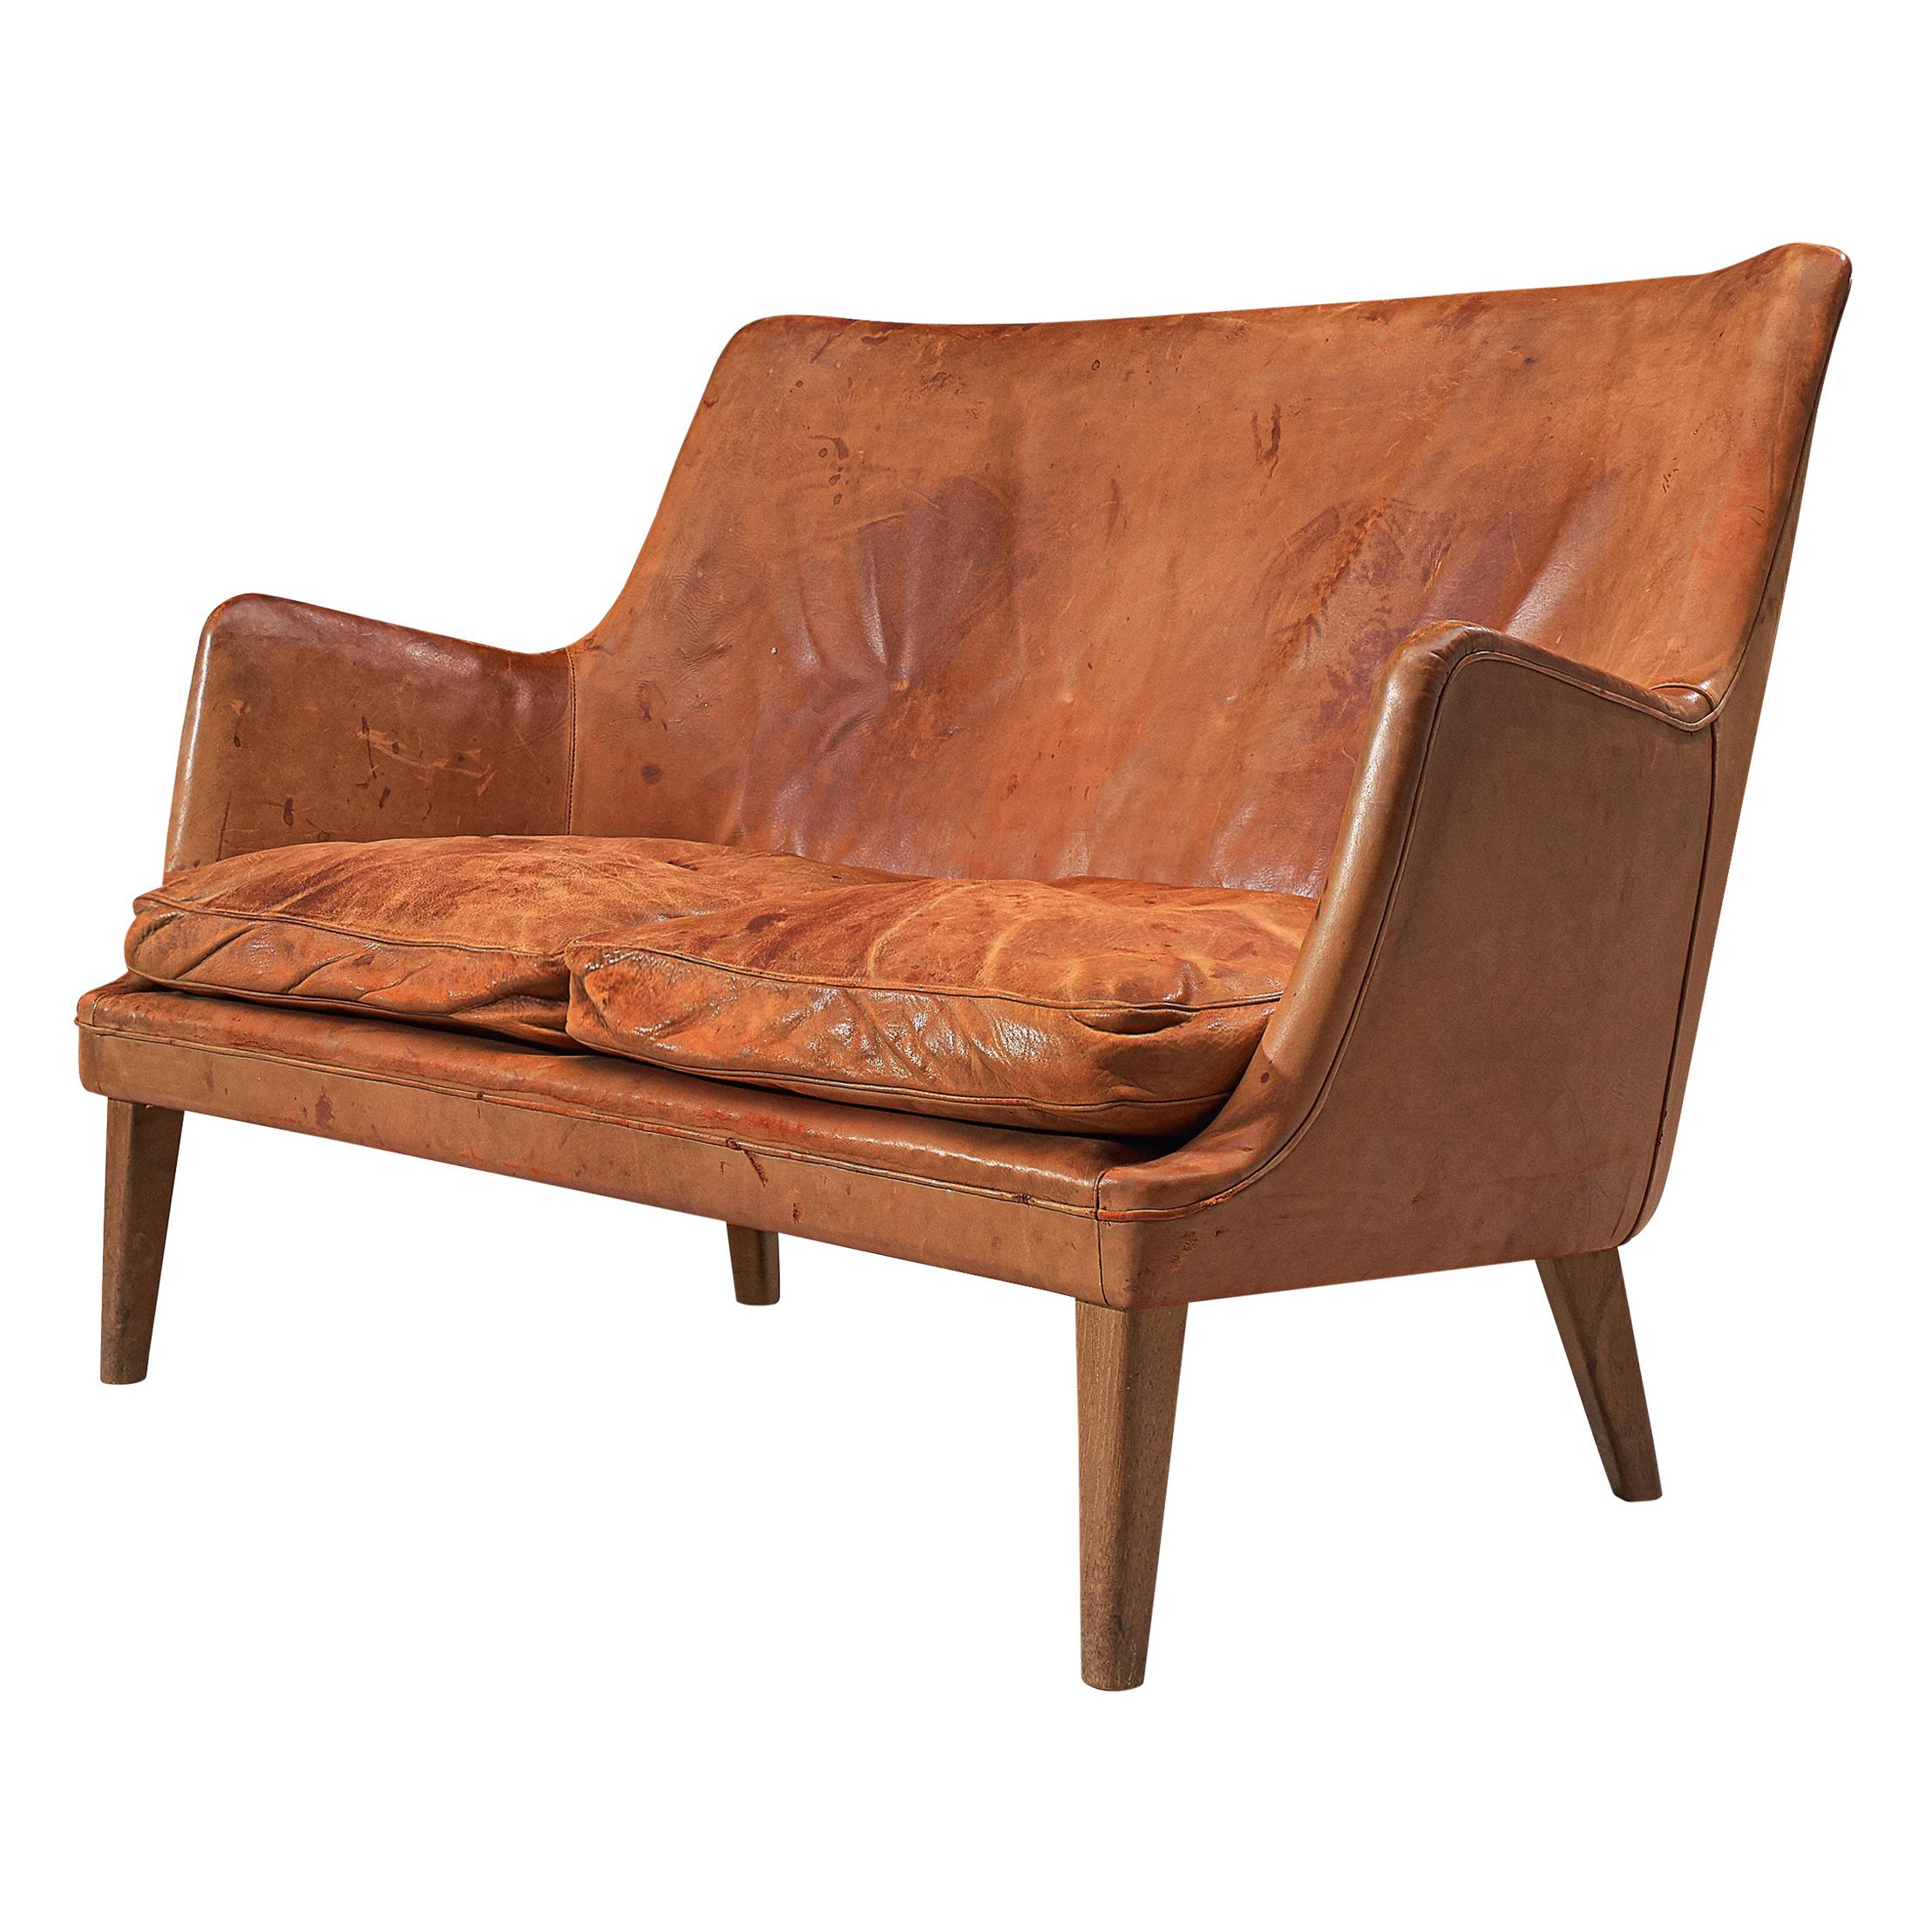 Arne Vodder Sofa in Patinated Cognac Leather